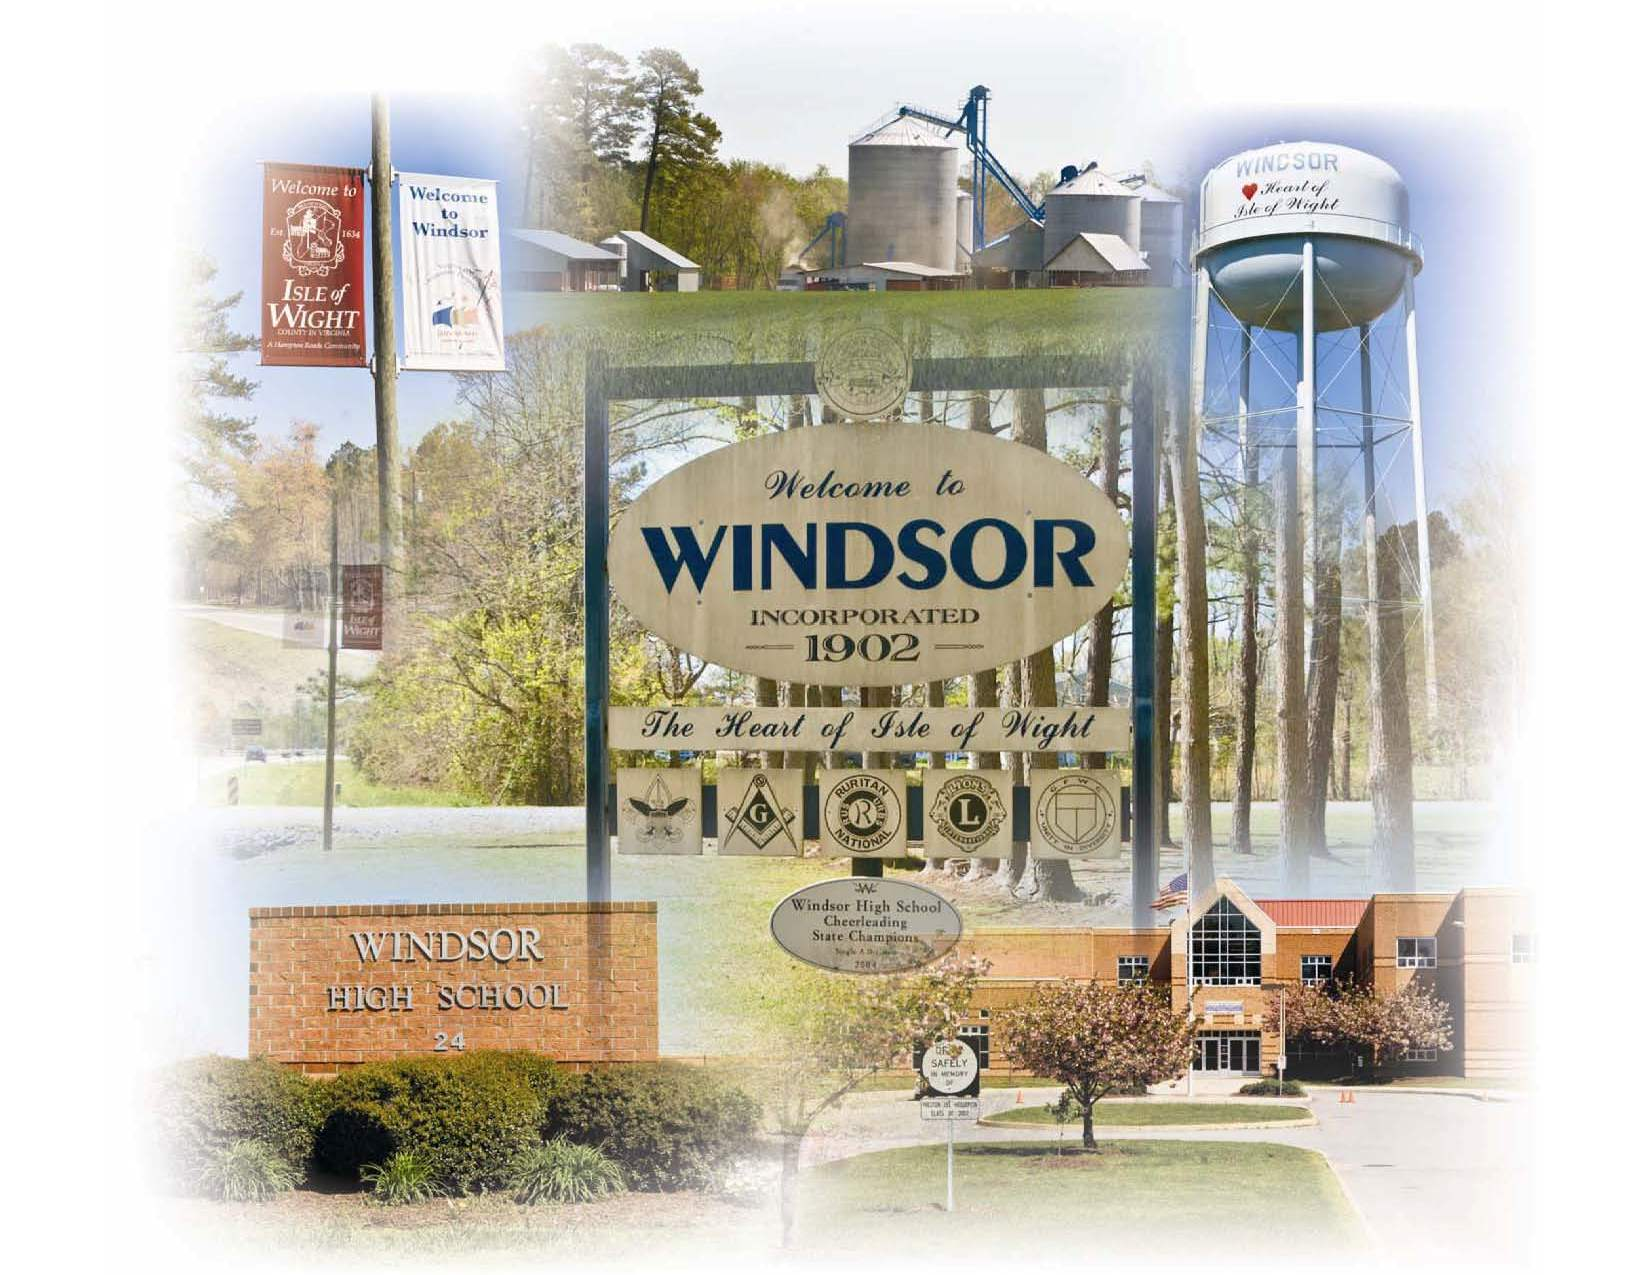 About Windsor